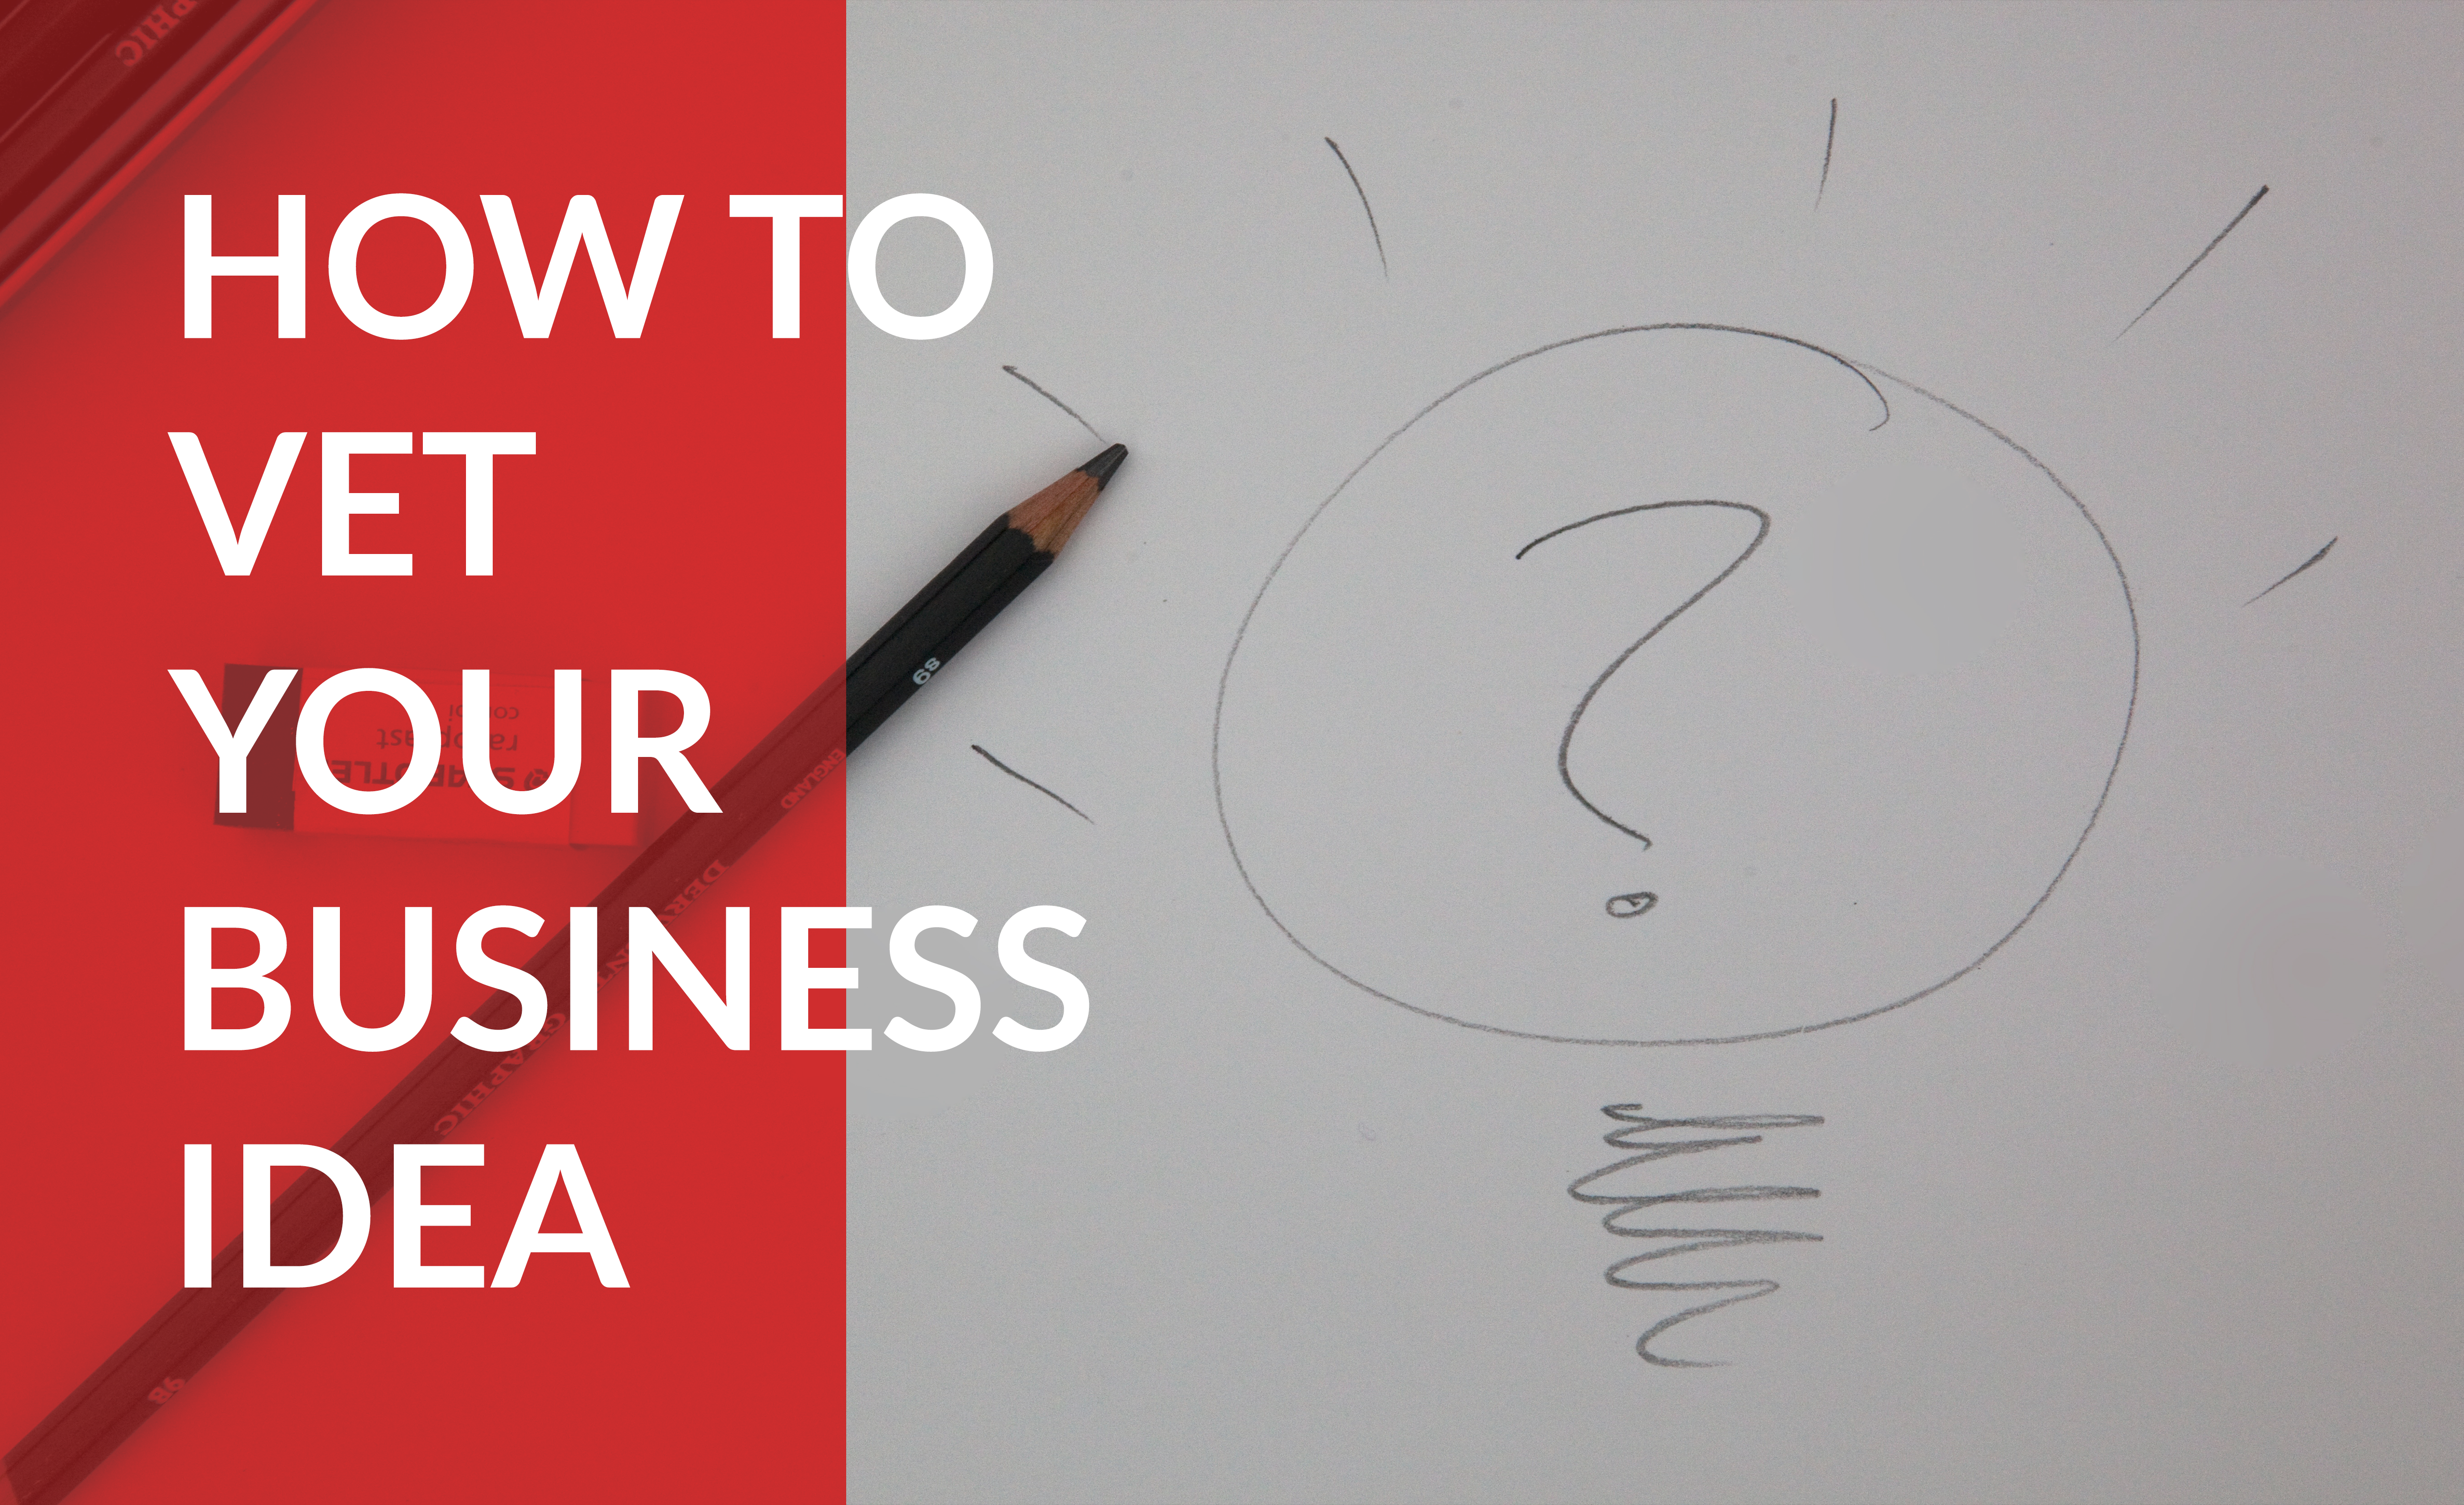 How to Vet Your Business Idea